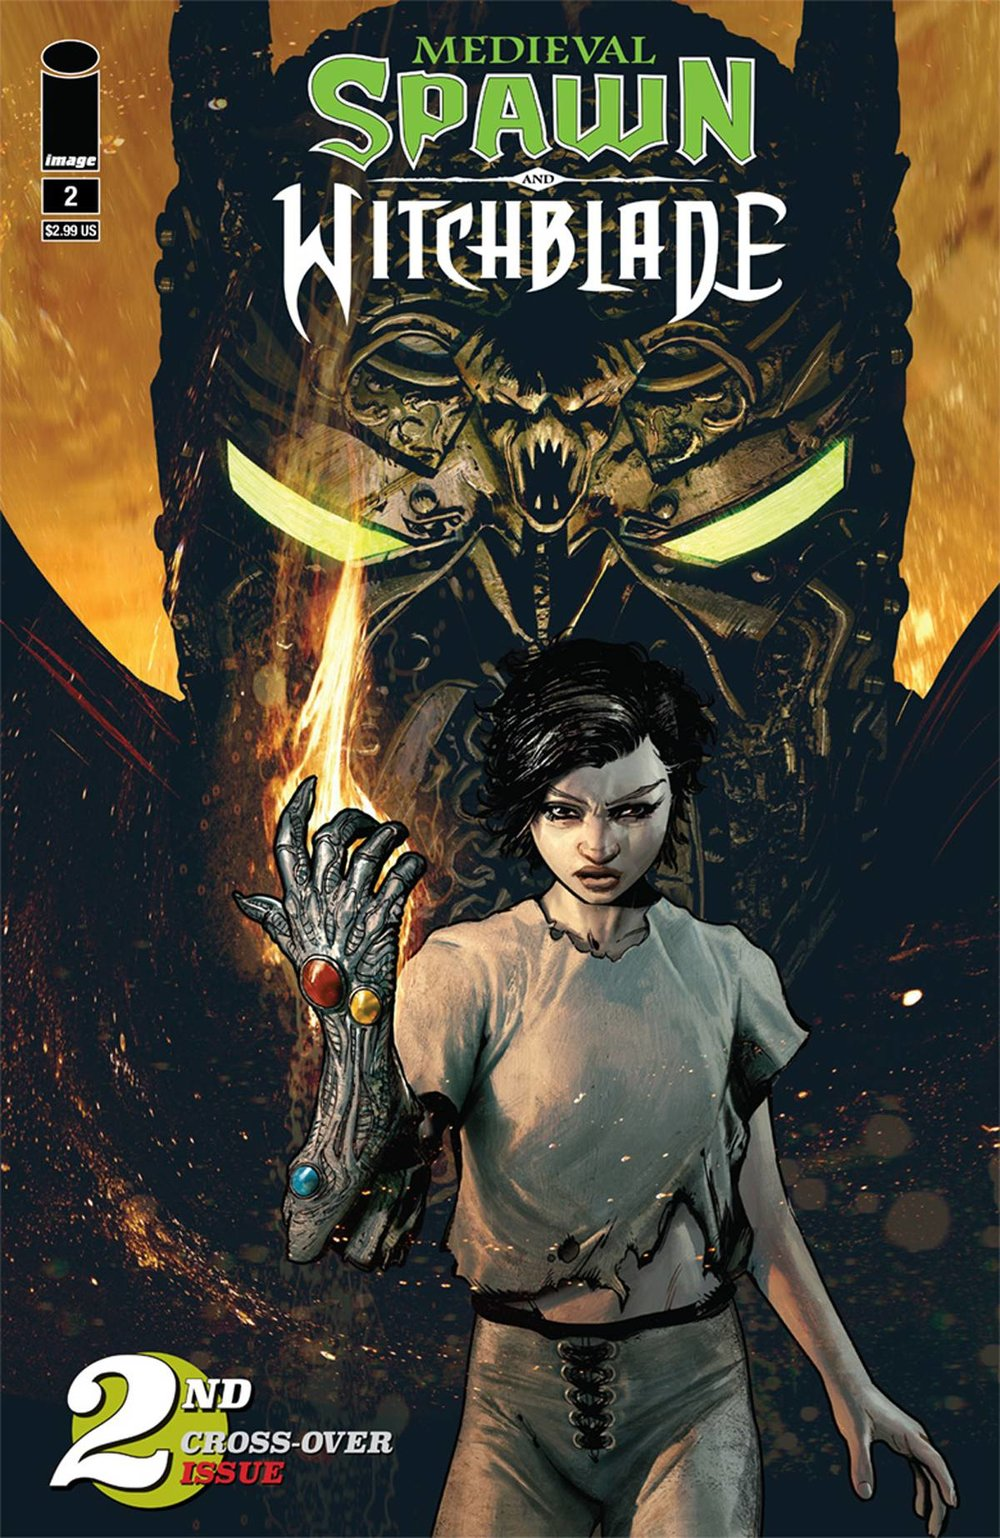 MEDIEVAL SPAWN WITCHBLADE 2 of 4.jpg